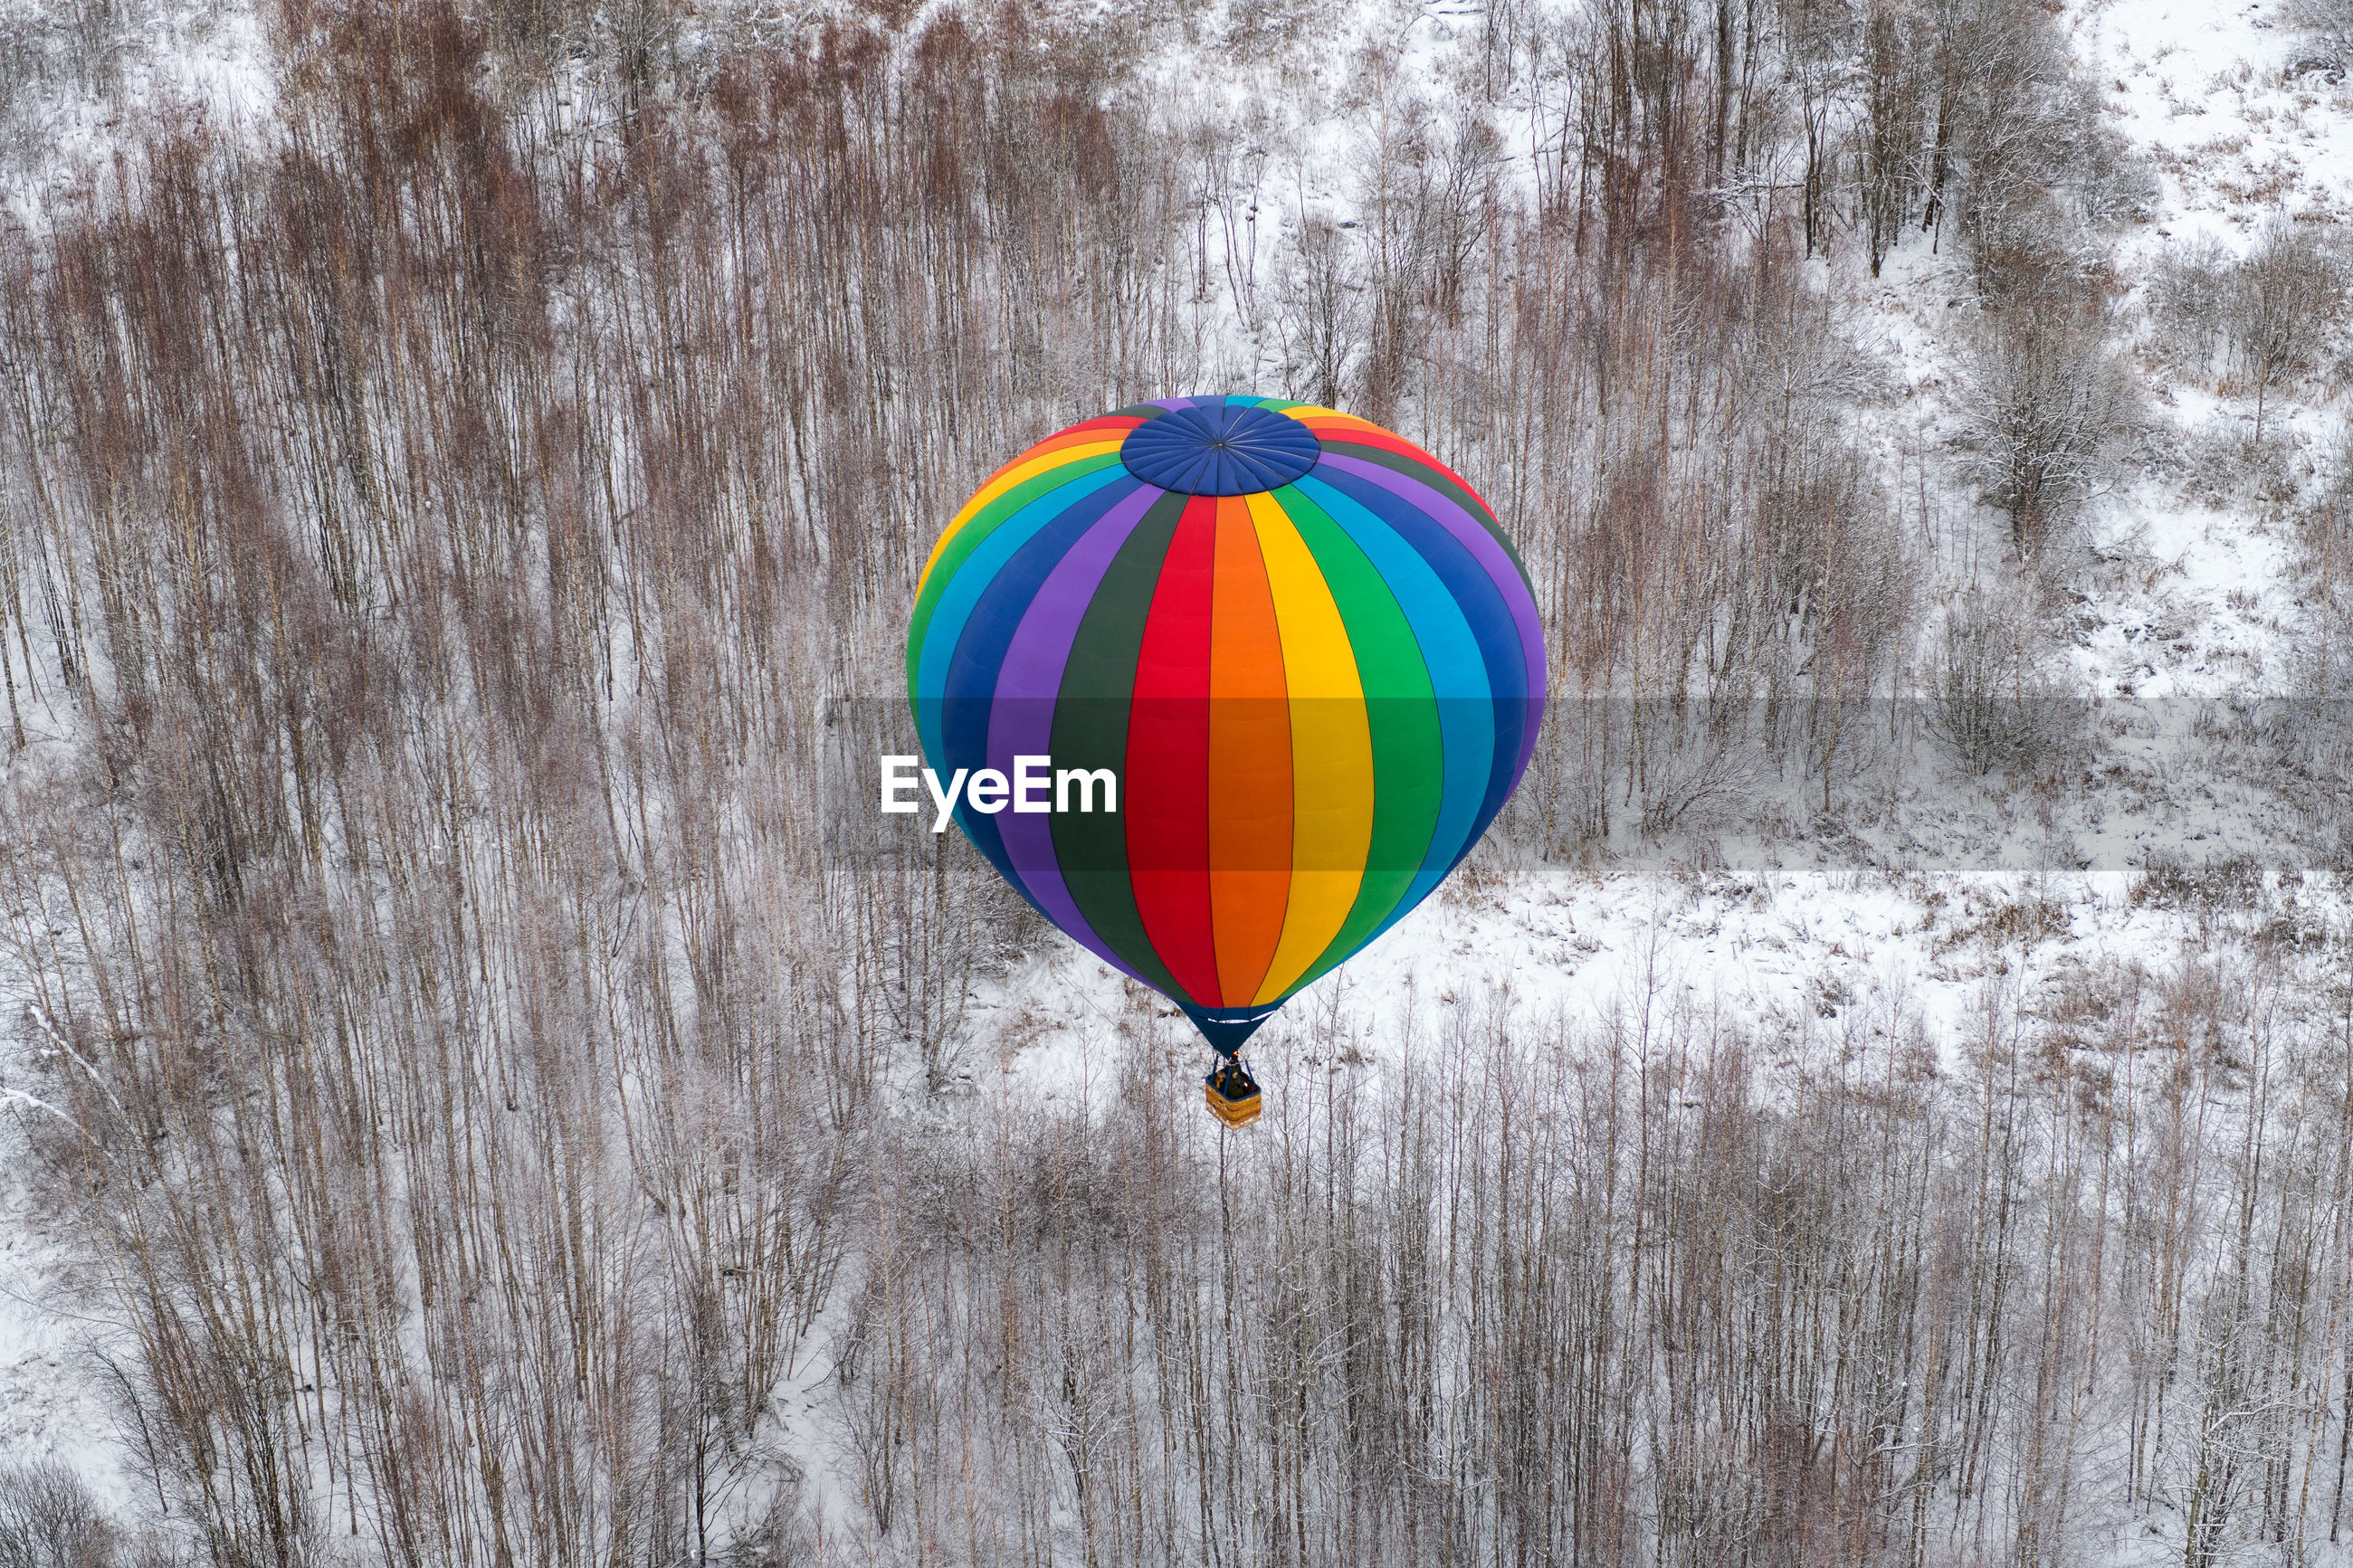 Multi colored hot air balloon flying over trees